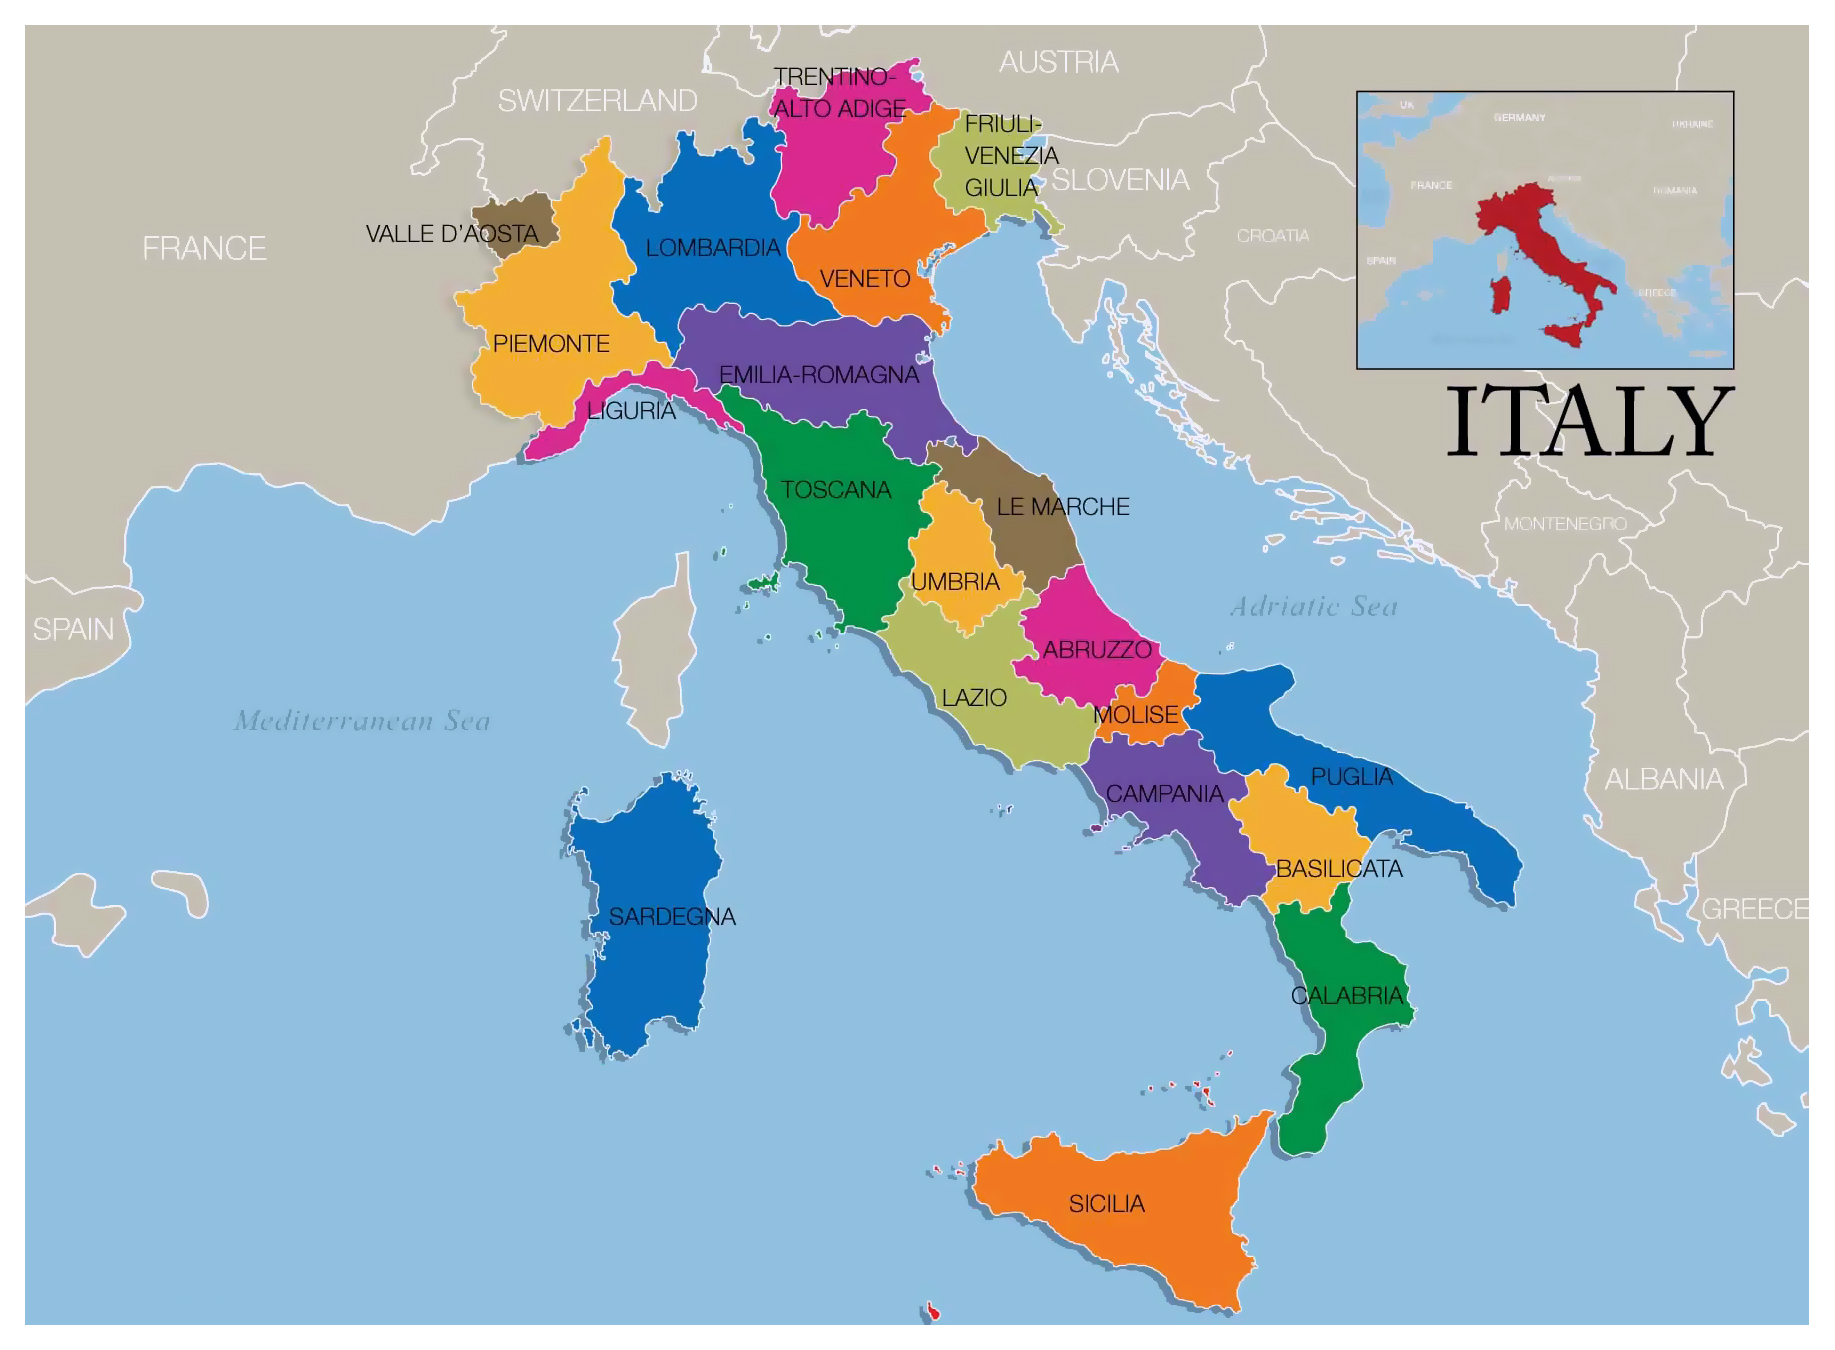 Map Of Europe Showing Italy.Large Map Of Wine Regions Of Italy Italy Europe Mapsland